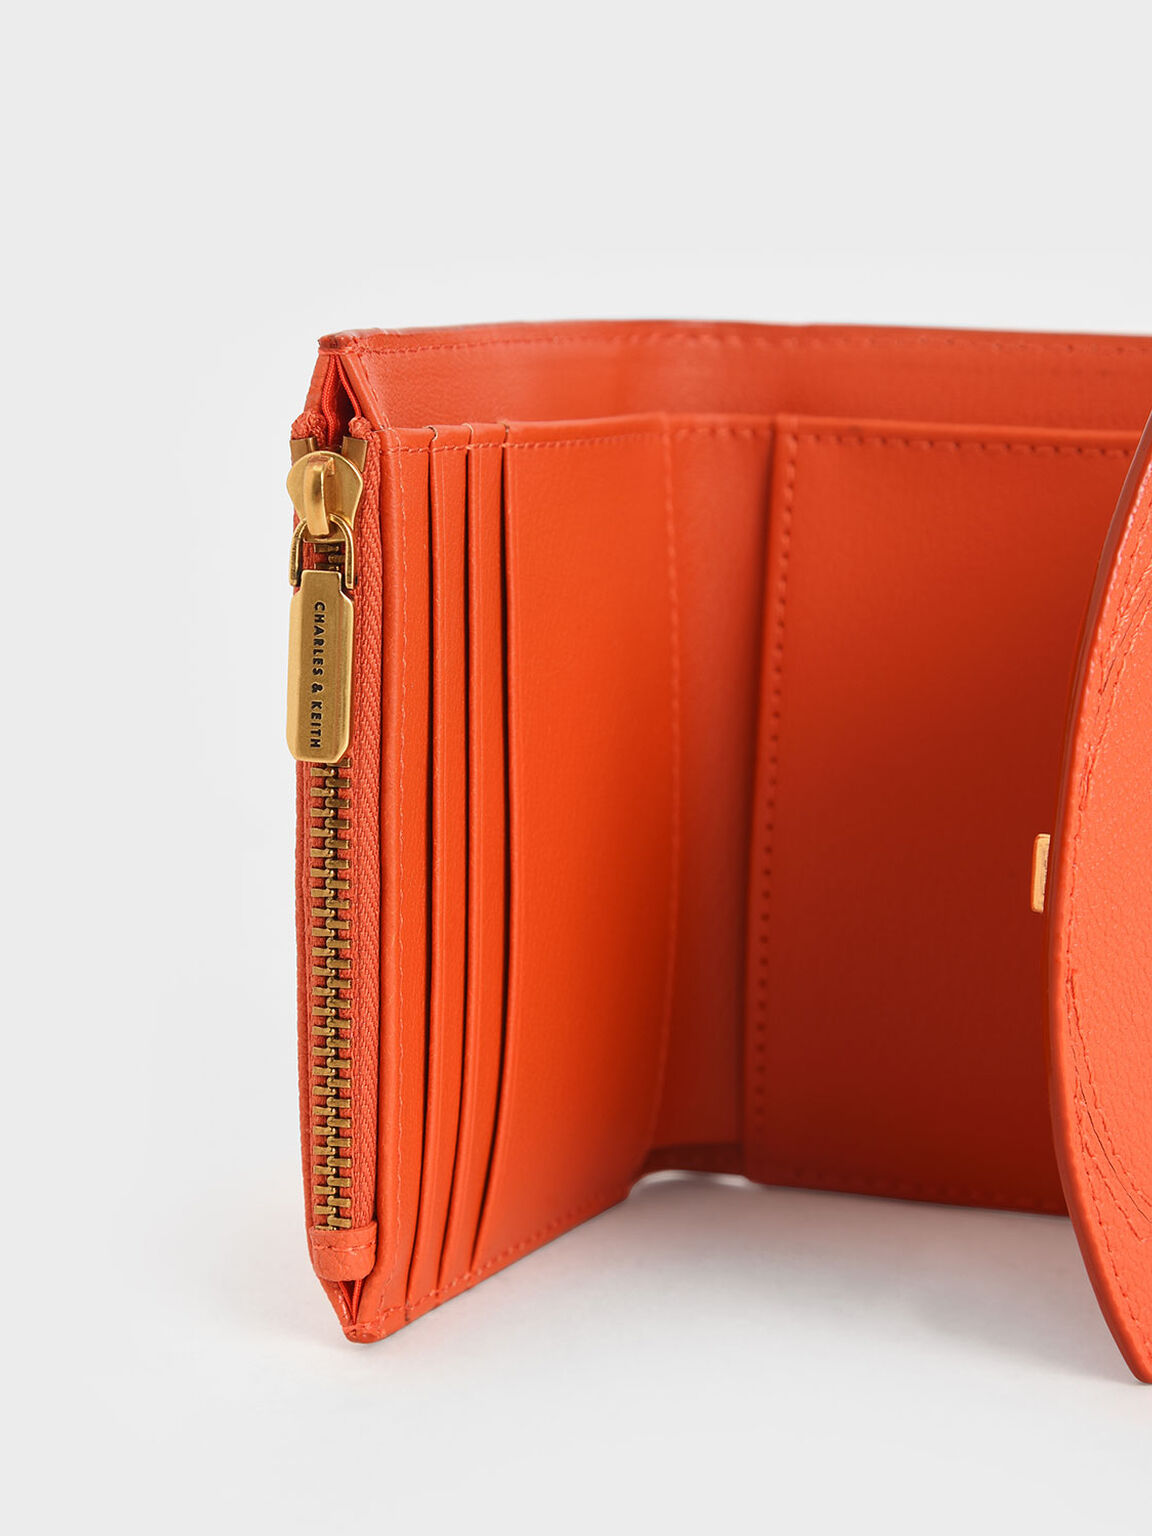 Push-Lock Mini Wallet, Orange, hi-res